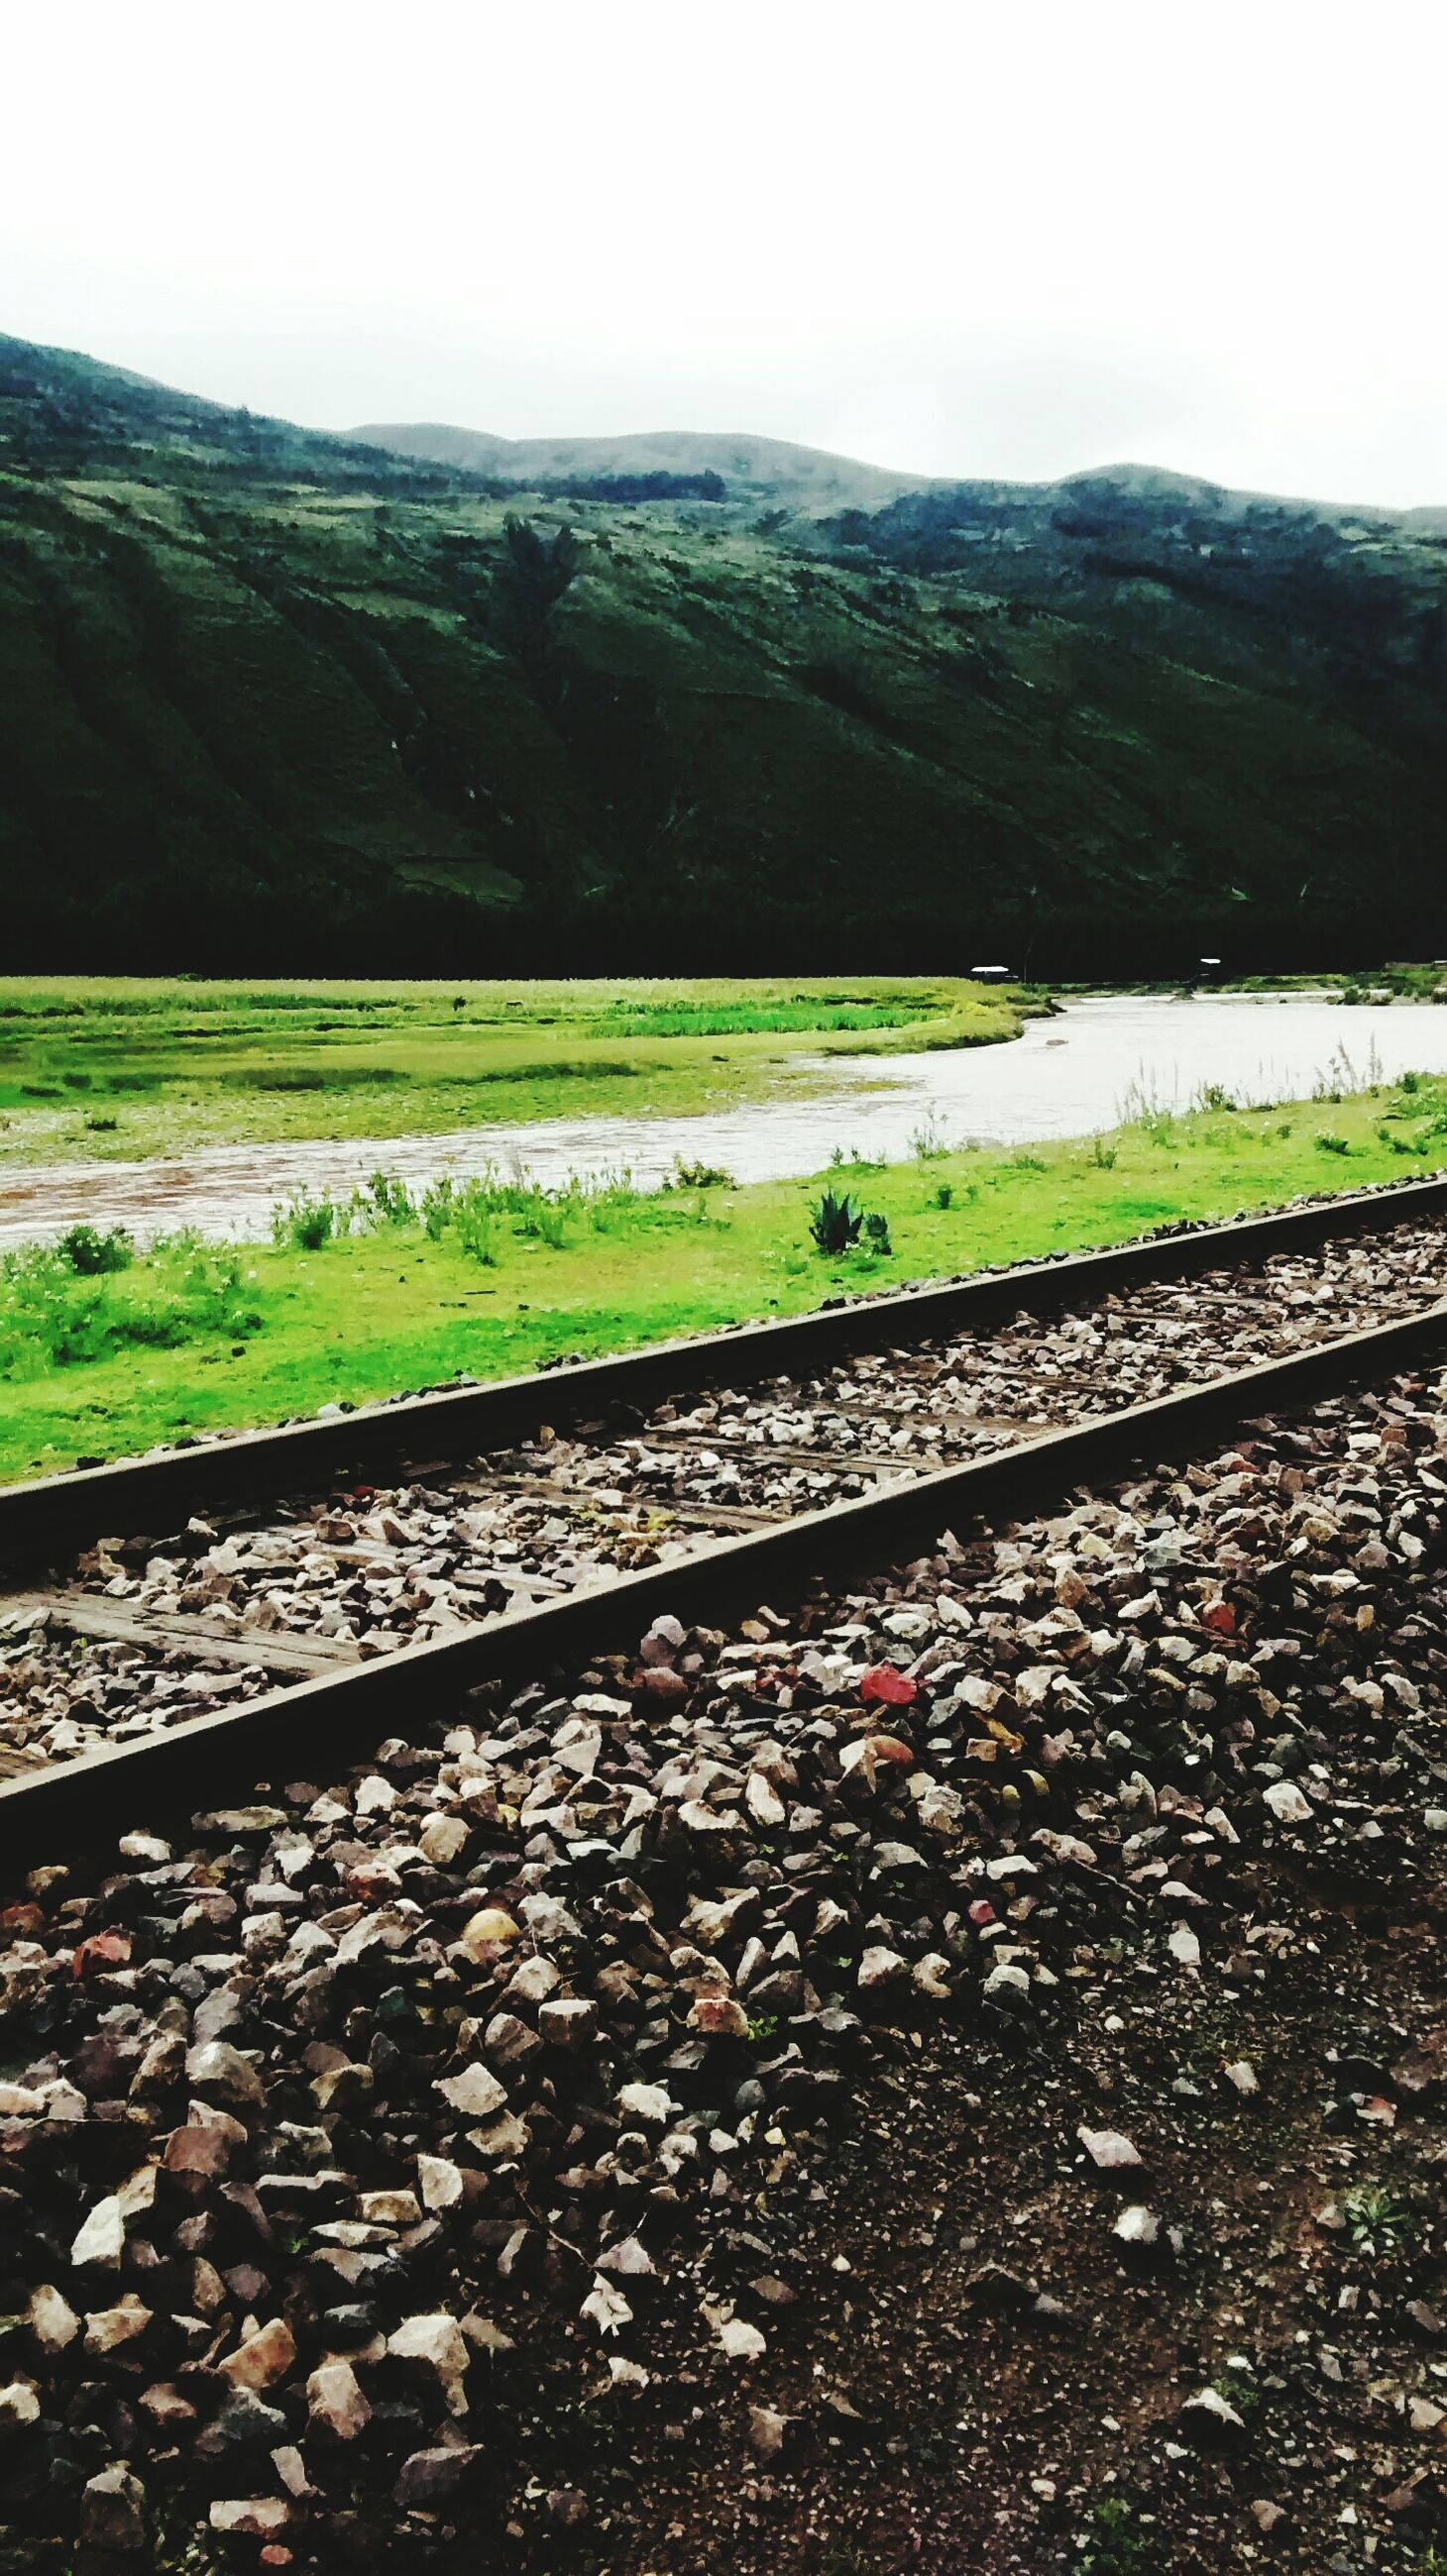 landscape, mountain, transportation, field, tranquil scene, tranquility, road, nature, clear sky, railroad track, scenics, rural scene, beauty in nature, sky, green color, rail transportation, agriculture, day, grass, outdoors